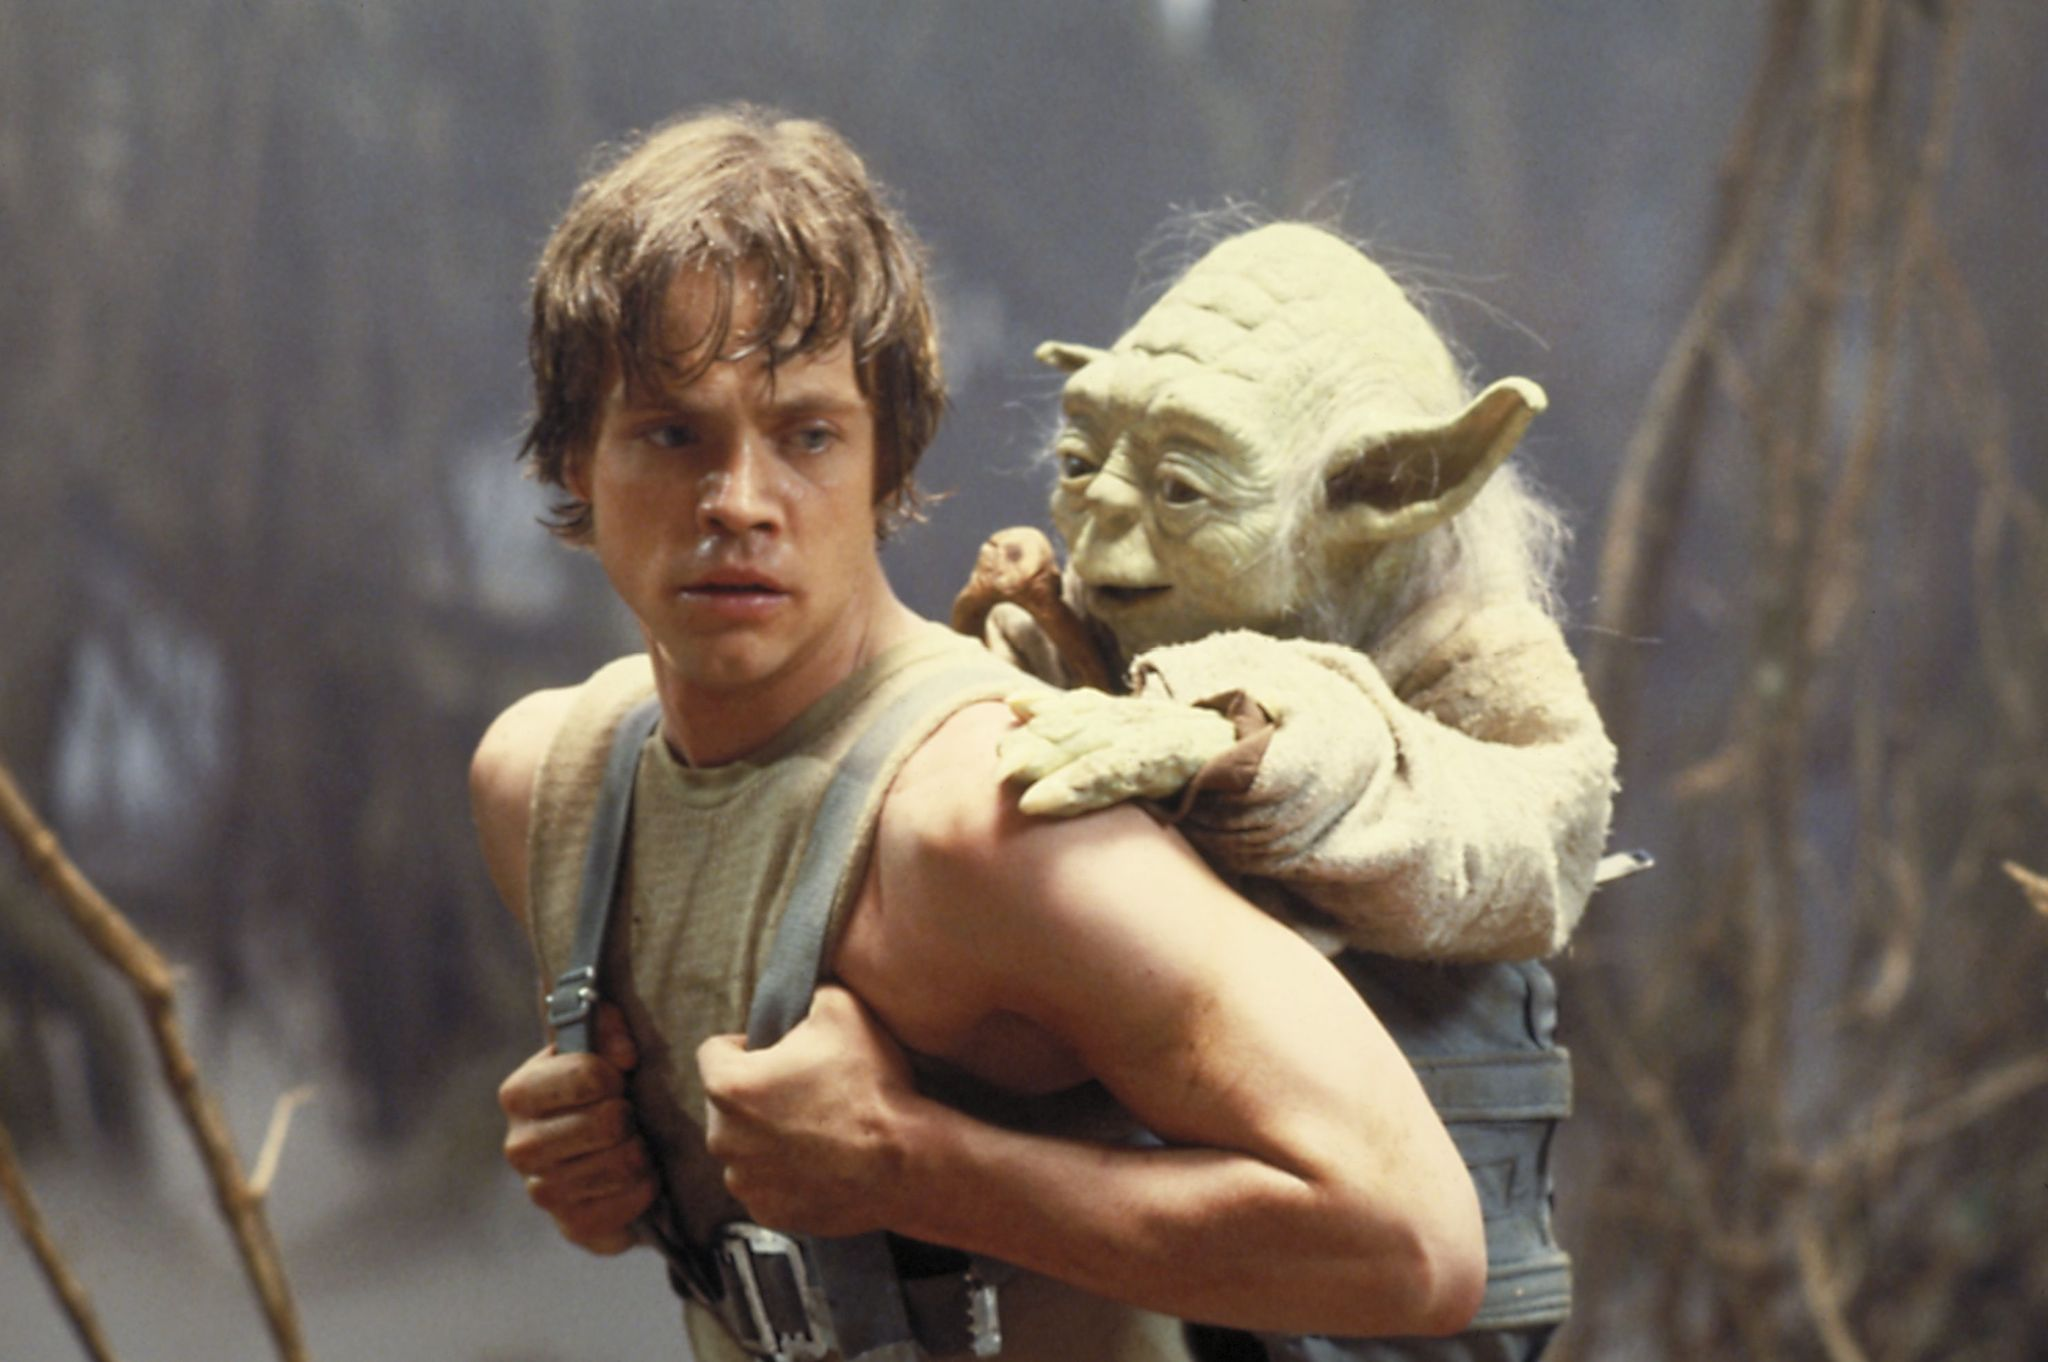 Mark Hamill as Luke Skywalker and Yoda in Star Wars: Episode V - The Empire Strikes Back (1980)